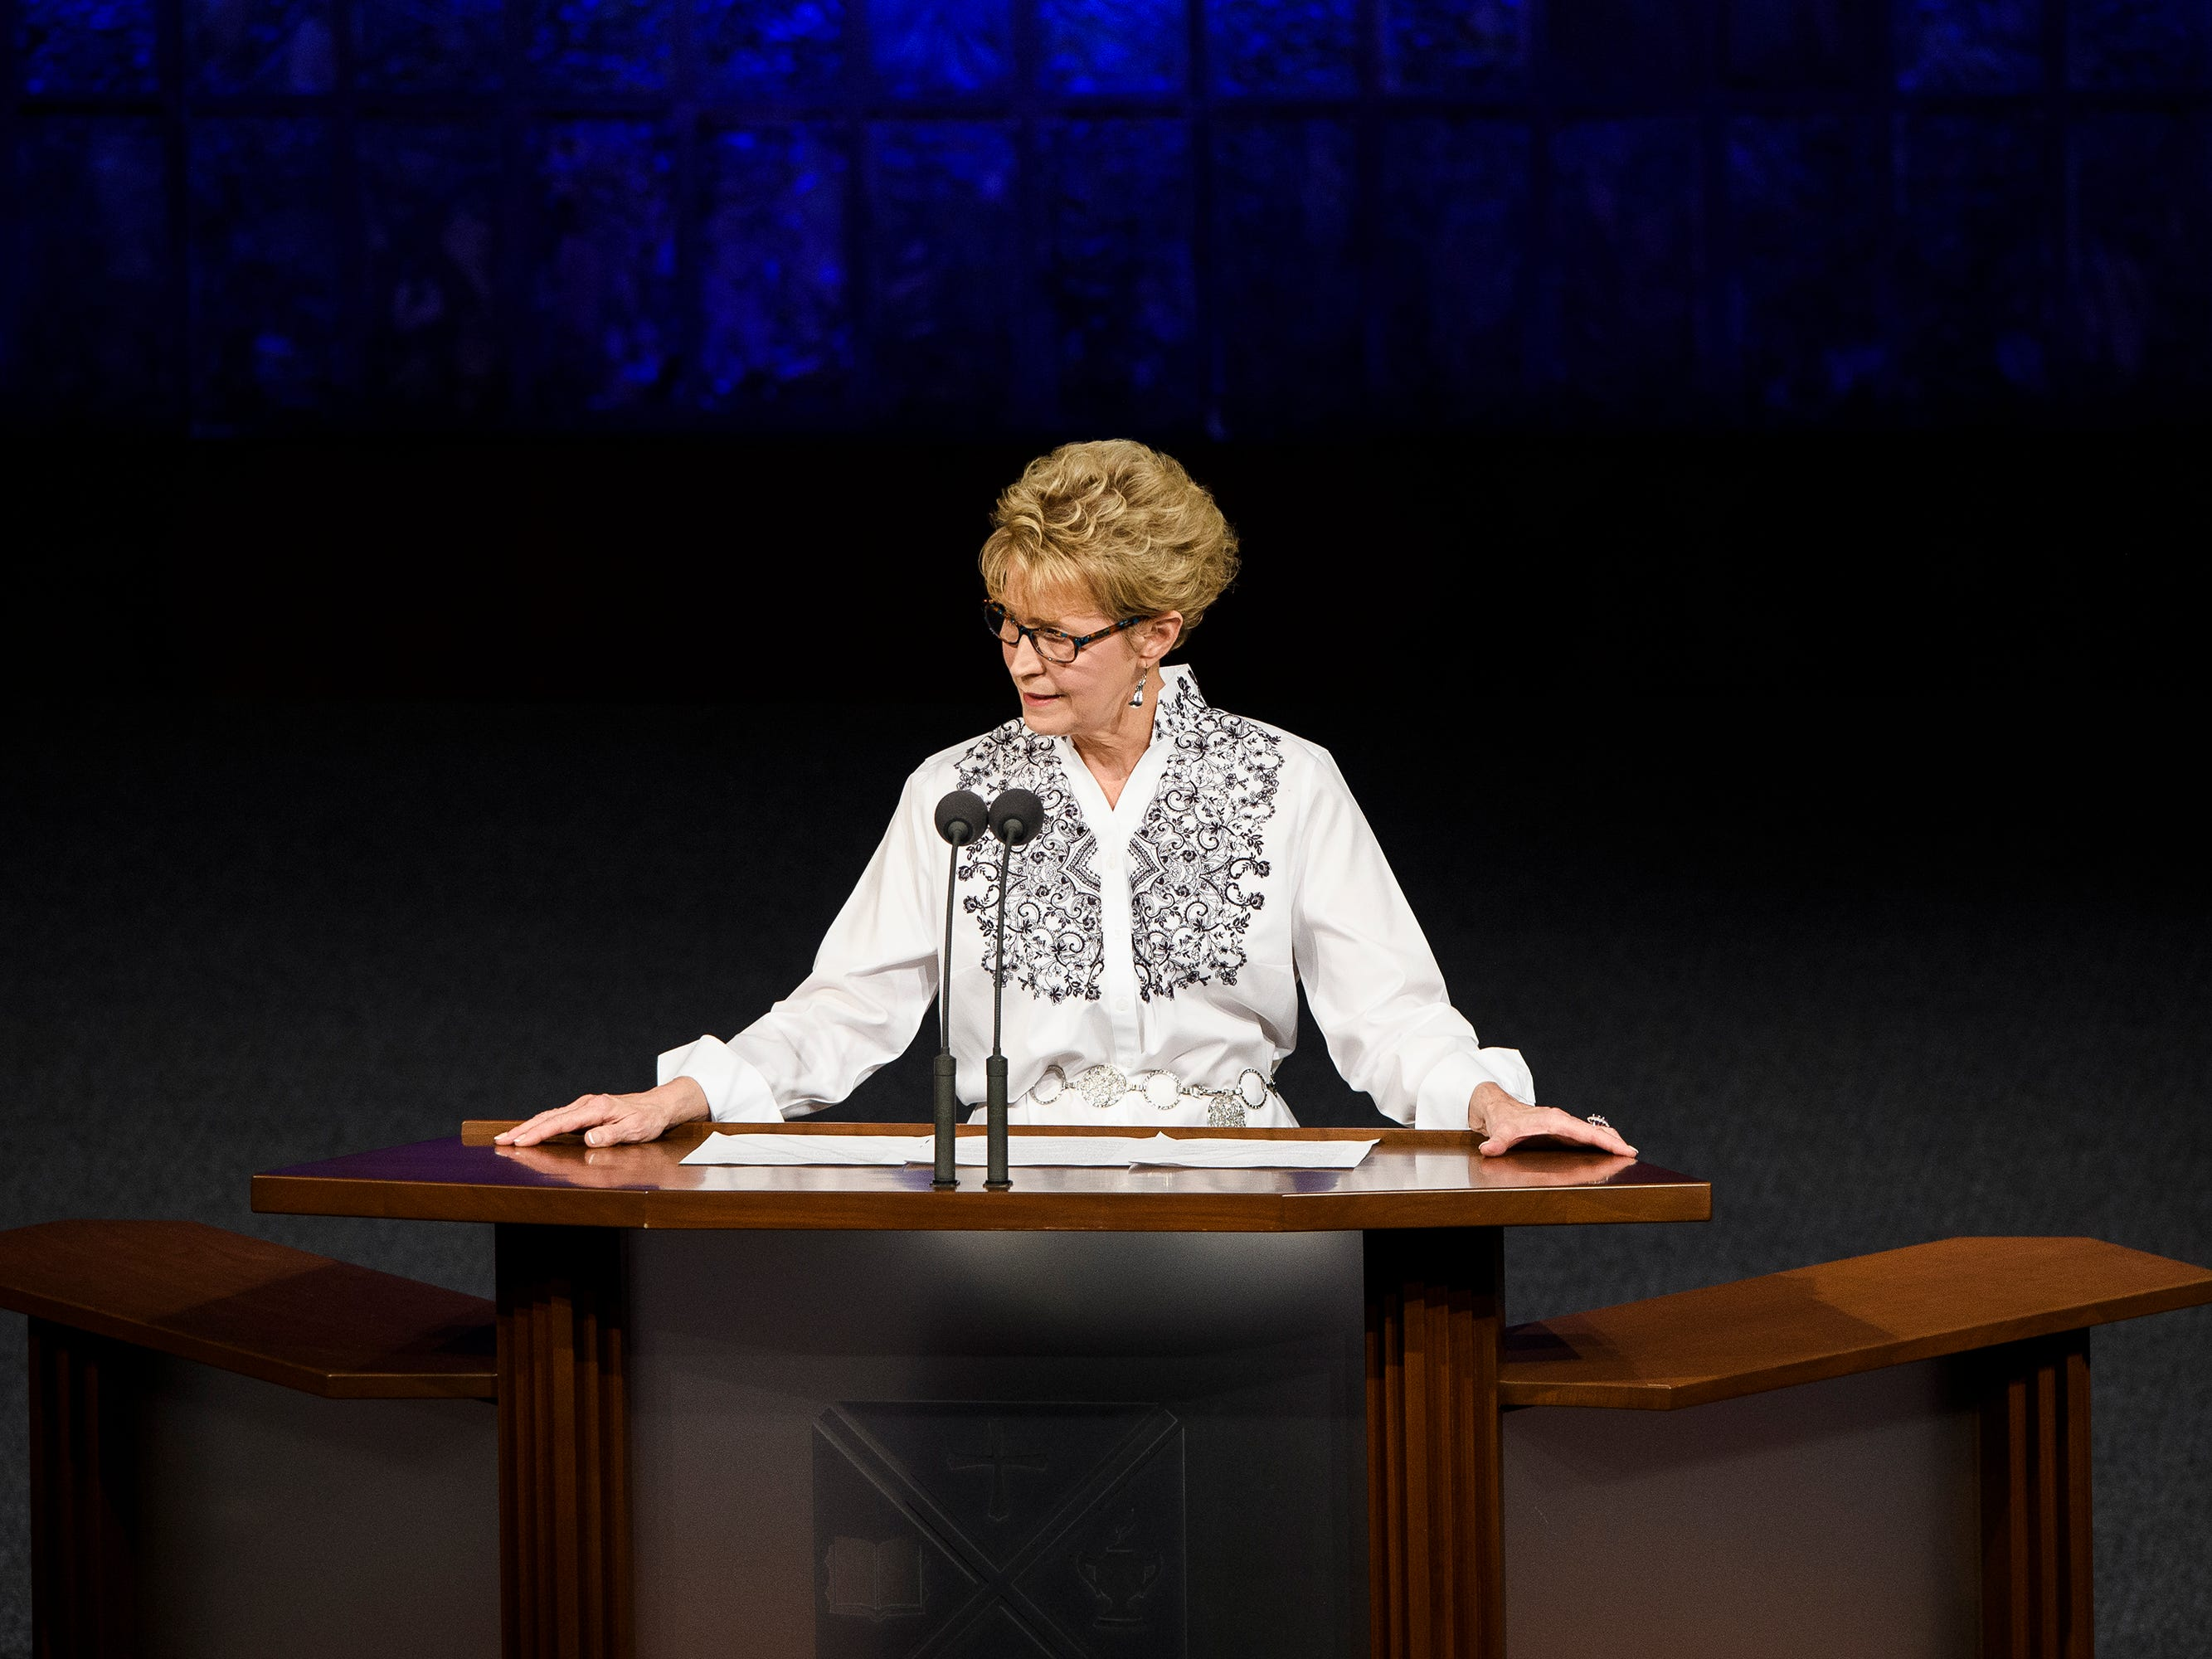 Donnalynn Hess speaks about the life of Beneth Peters Jones during her funeral service at Bob Jones University on Wednesday, Feb. 6, 2019.